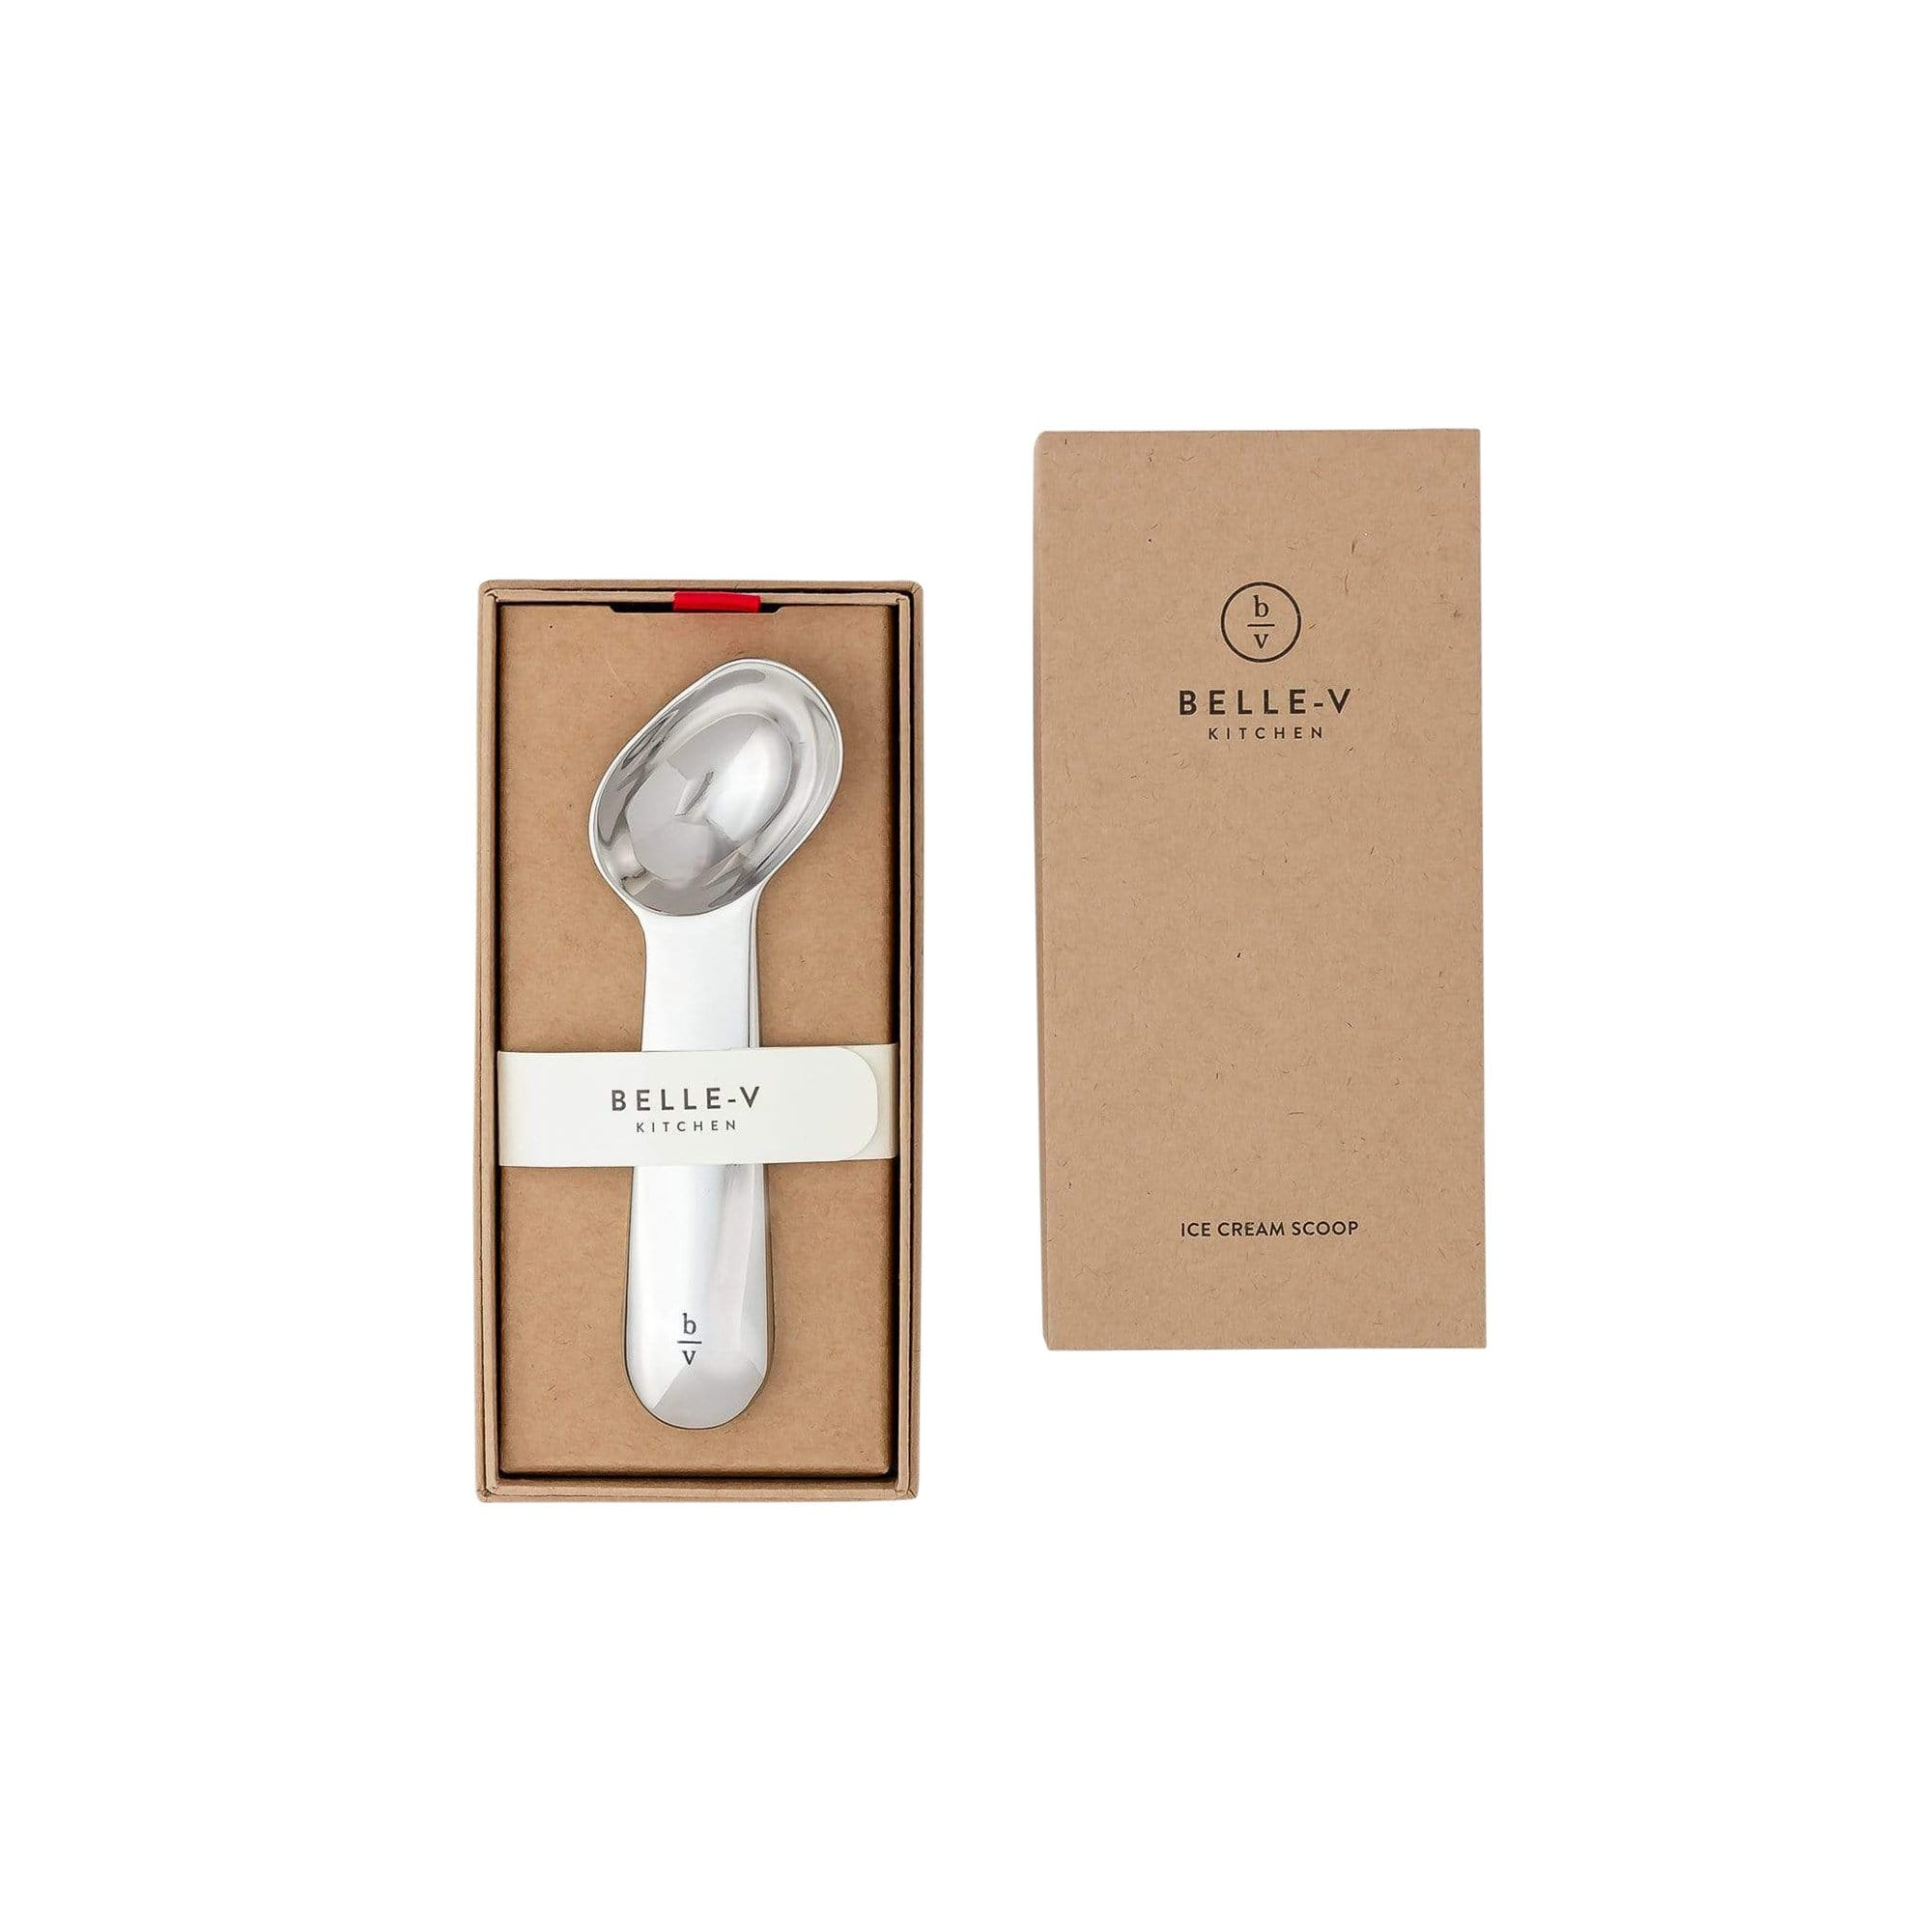 Left-Handed Limited-Edition Ice Cream Scoop